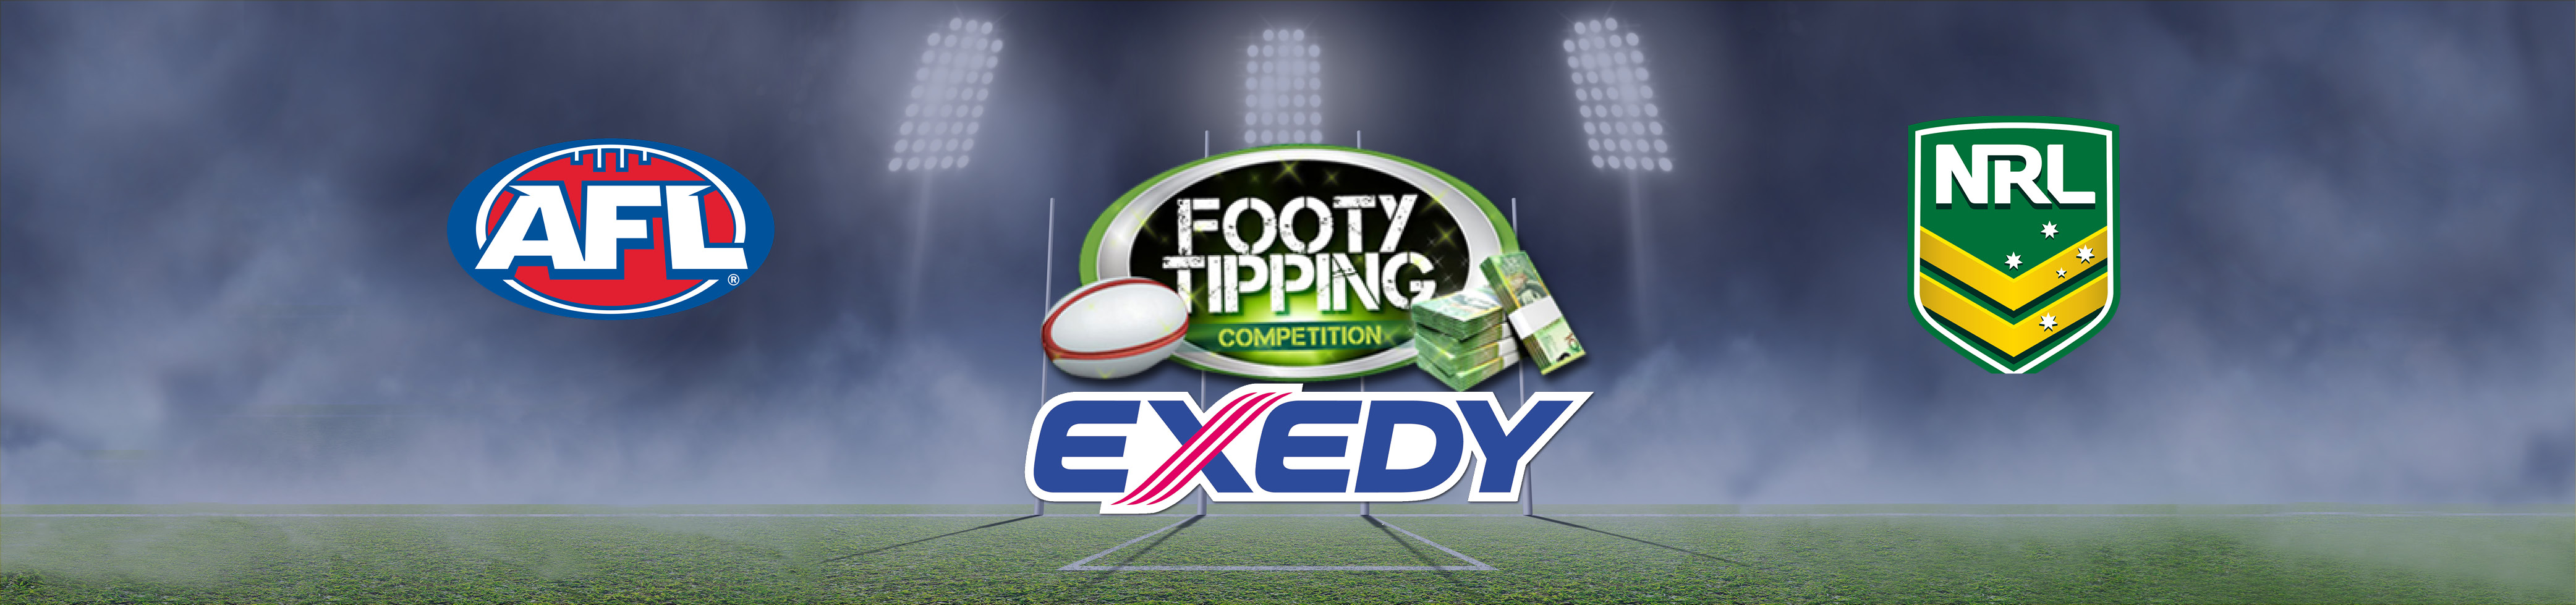 EXEDY FOOTY TIPPING COMP